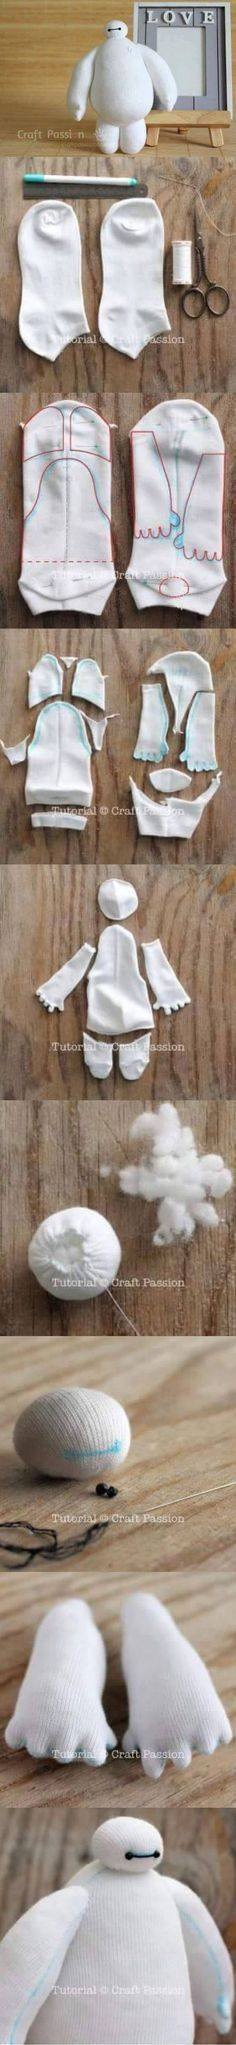 Sock Crafts, Cute Crafts, Crafts To Do, Sewing Crafts, Sewing Projects, Crafts For Kids, Craft Projects, Arts And Crafts, Paper Crafts